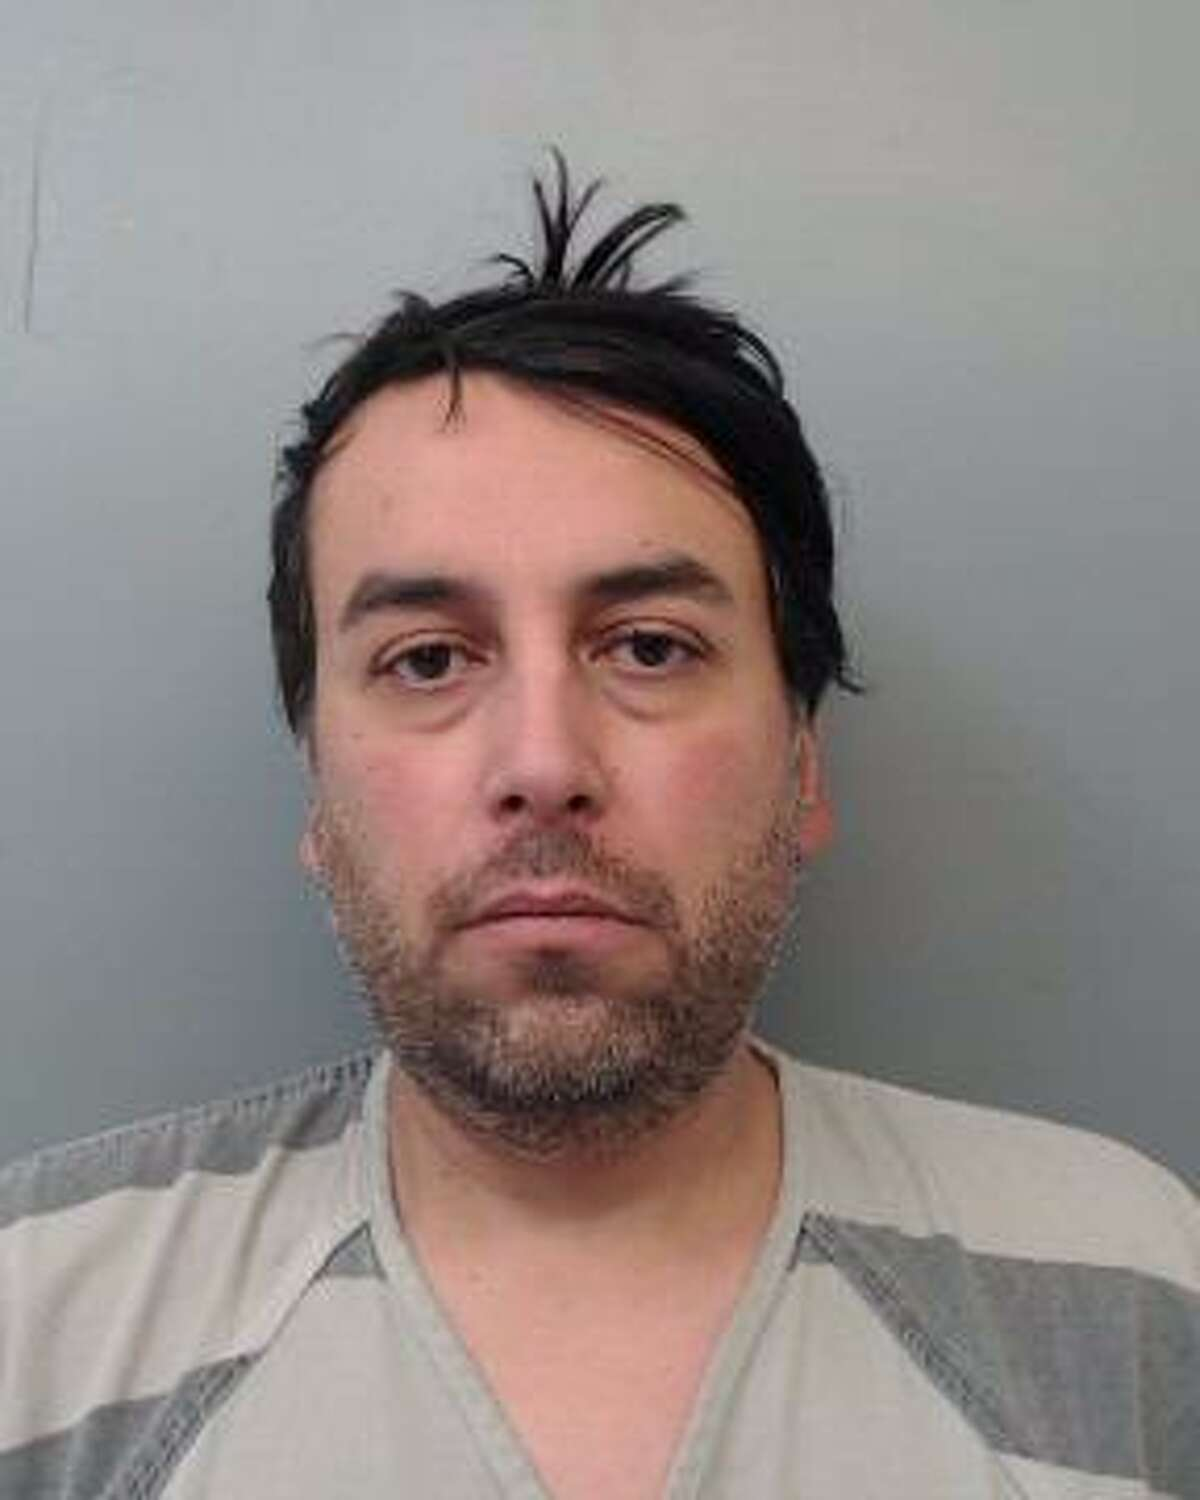 Rodrigo Guerra Jr., 39, was arrested and charged with criminal mischief.